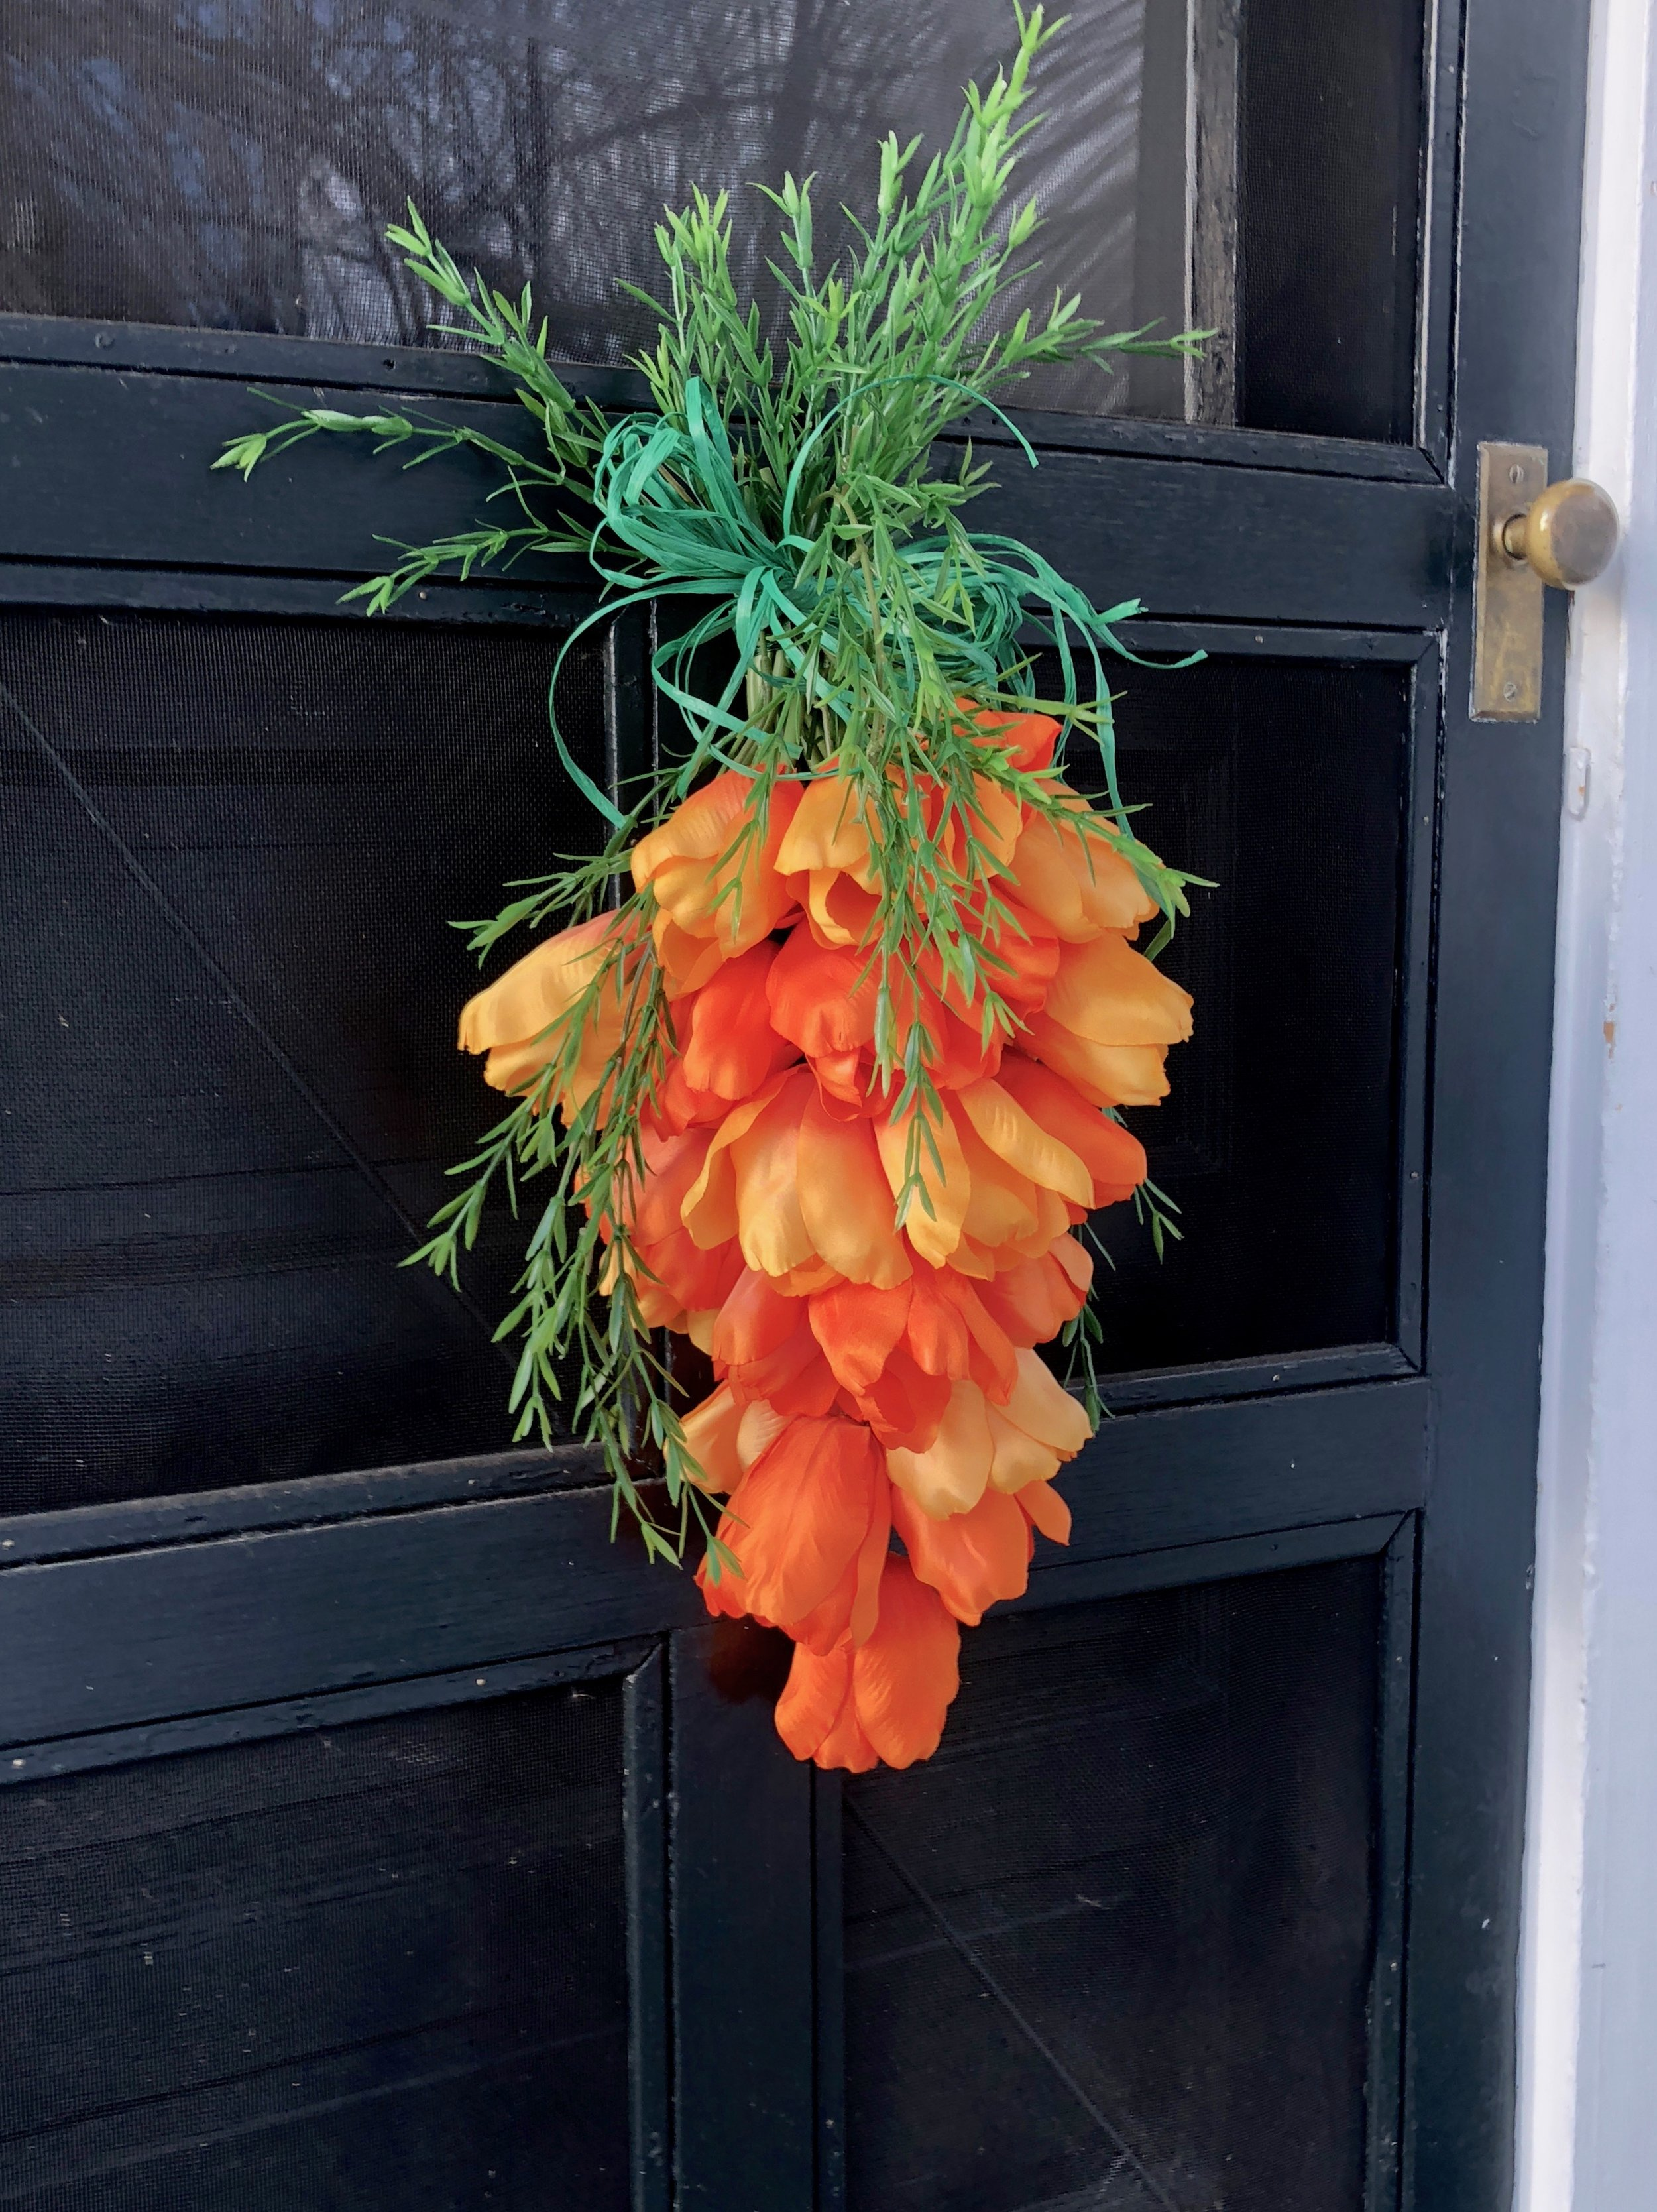 How to make a carrot out of orange tulips for spring Easter decoration